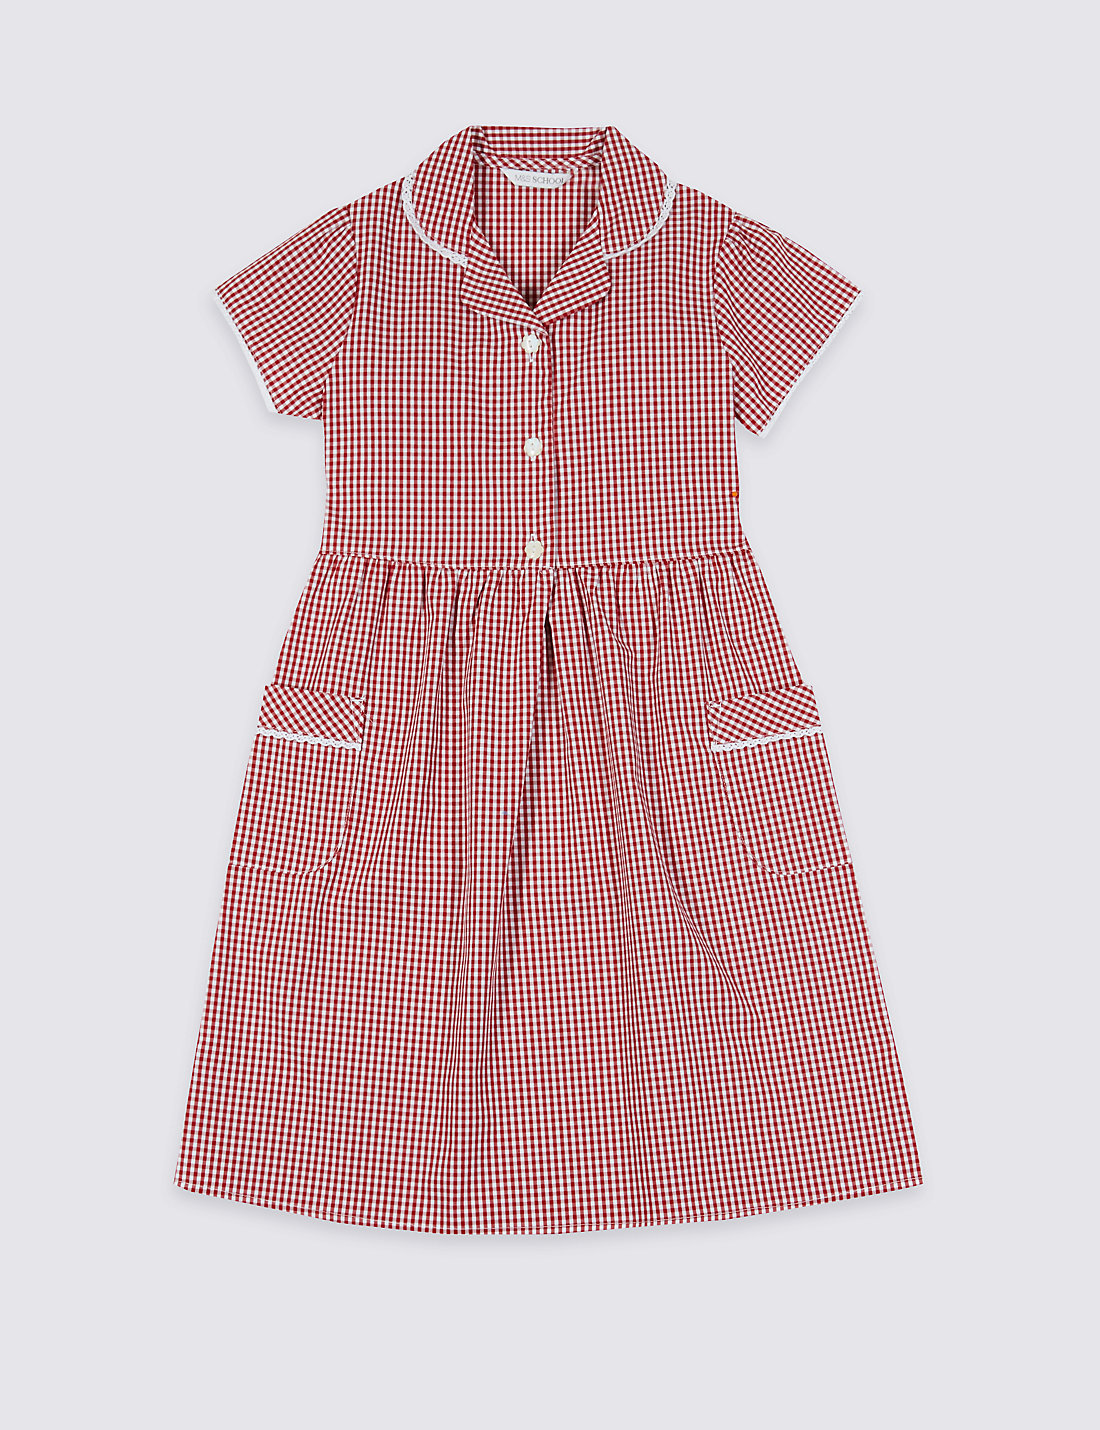 Girls' Classic Summer Gingham Dress | M&S